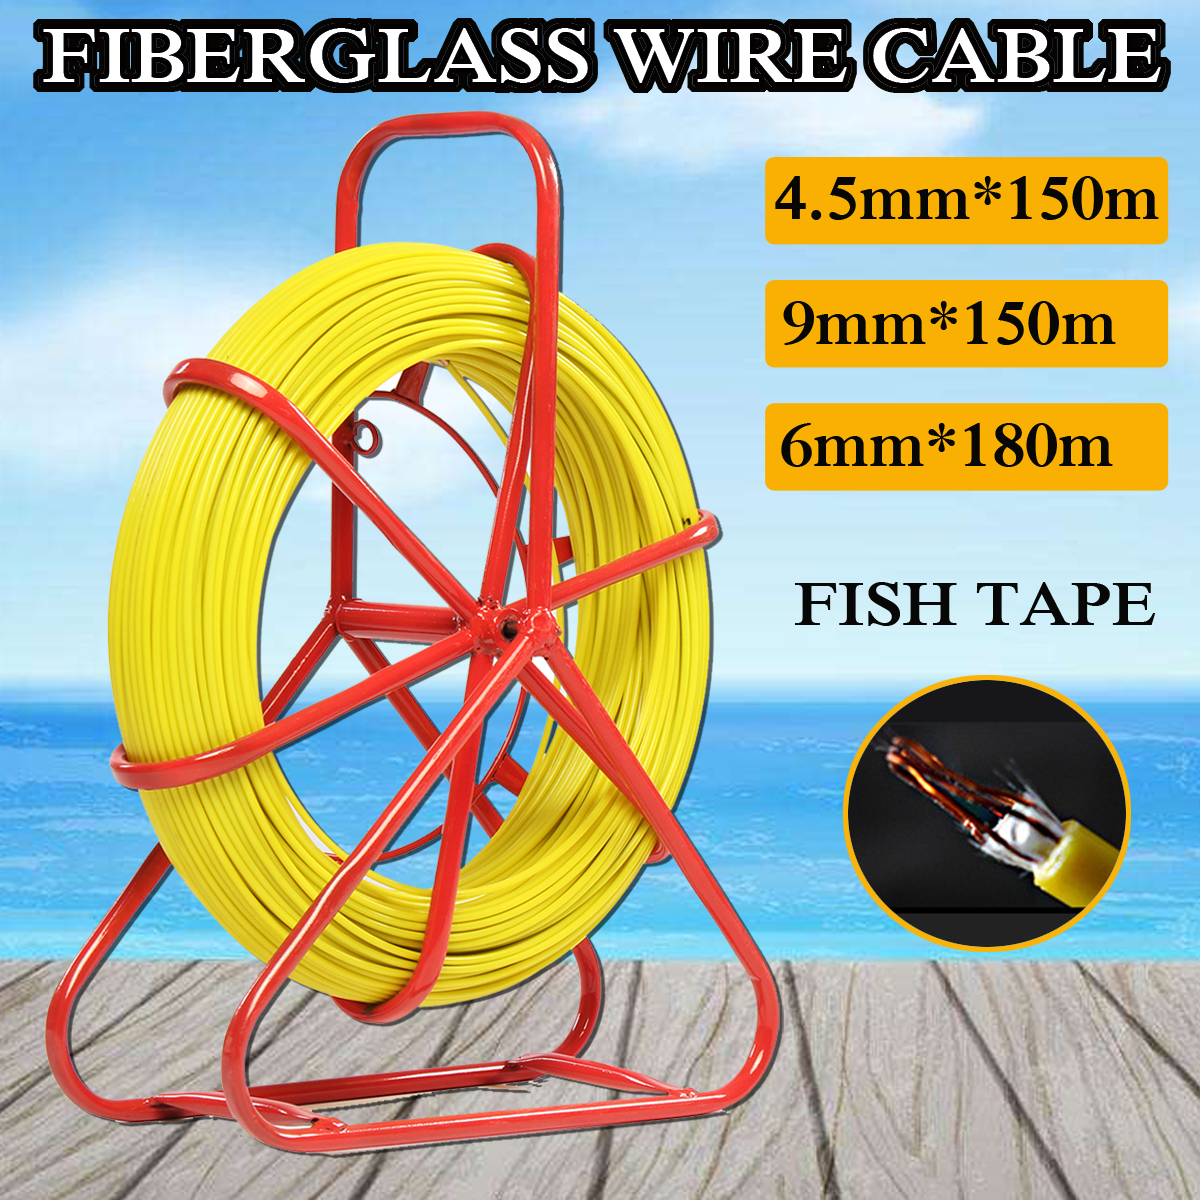 130m Fish Tape 6mm Fiberglass Wire Cable Running Rod Duct Rodder Puller Yellow